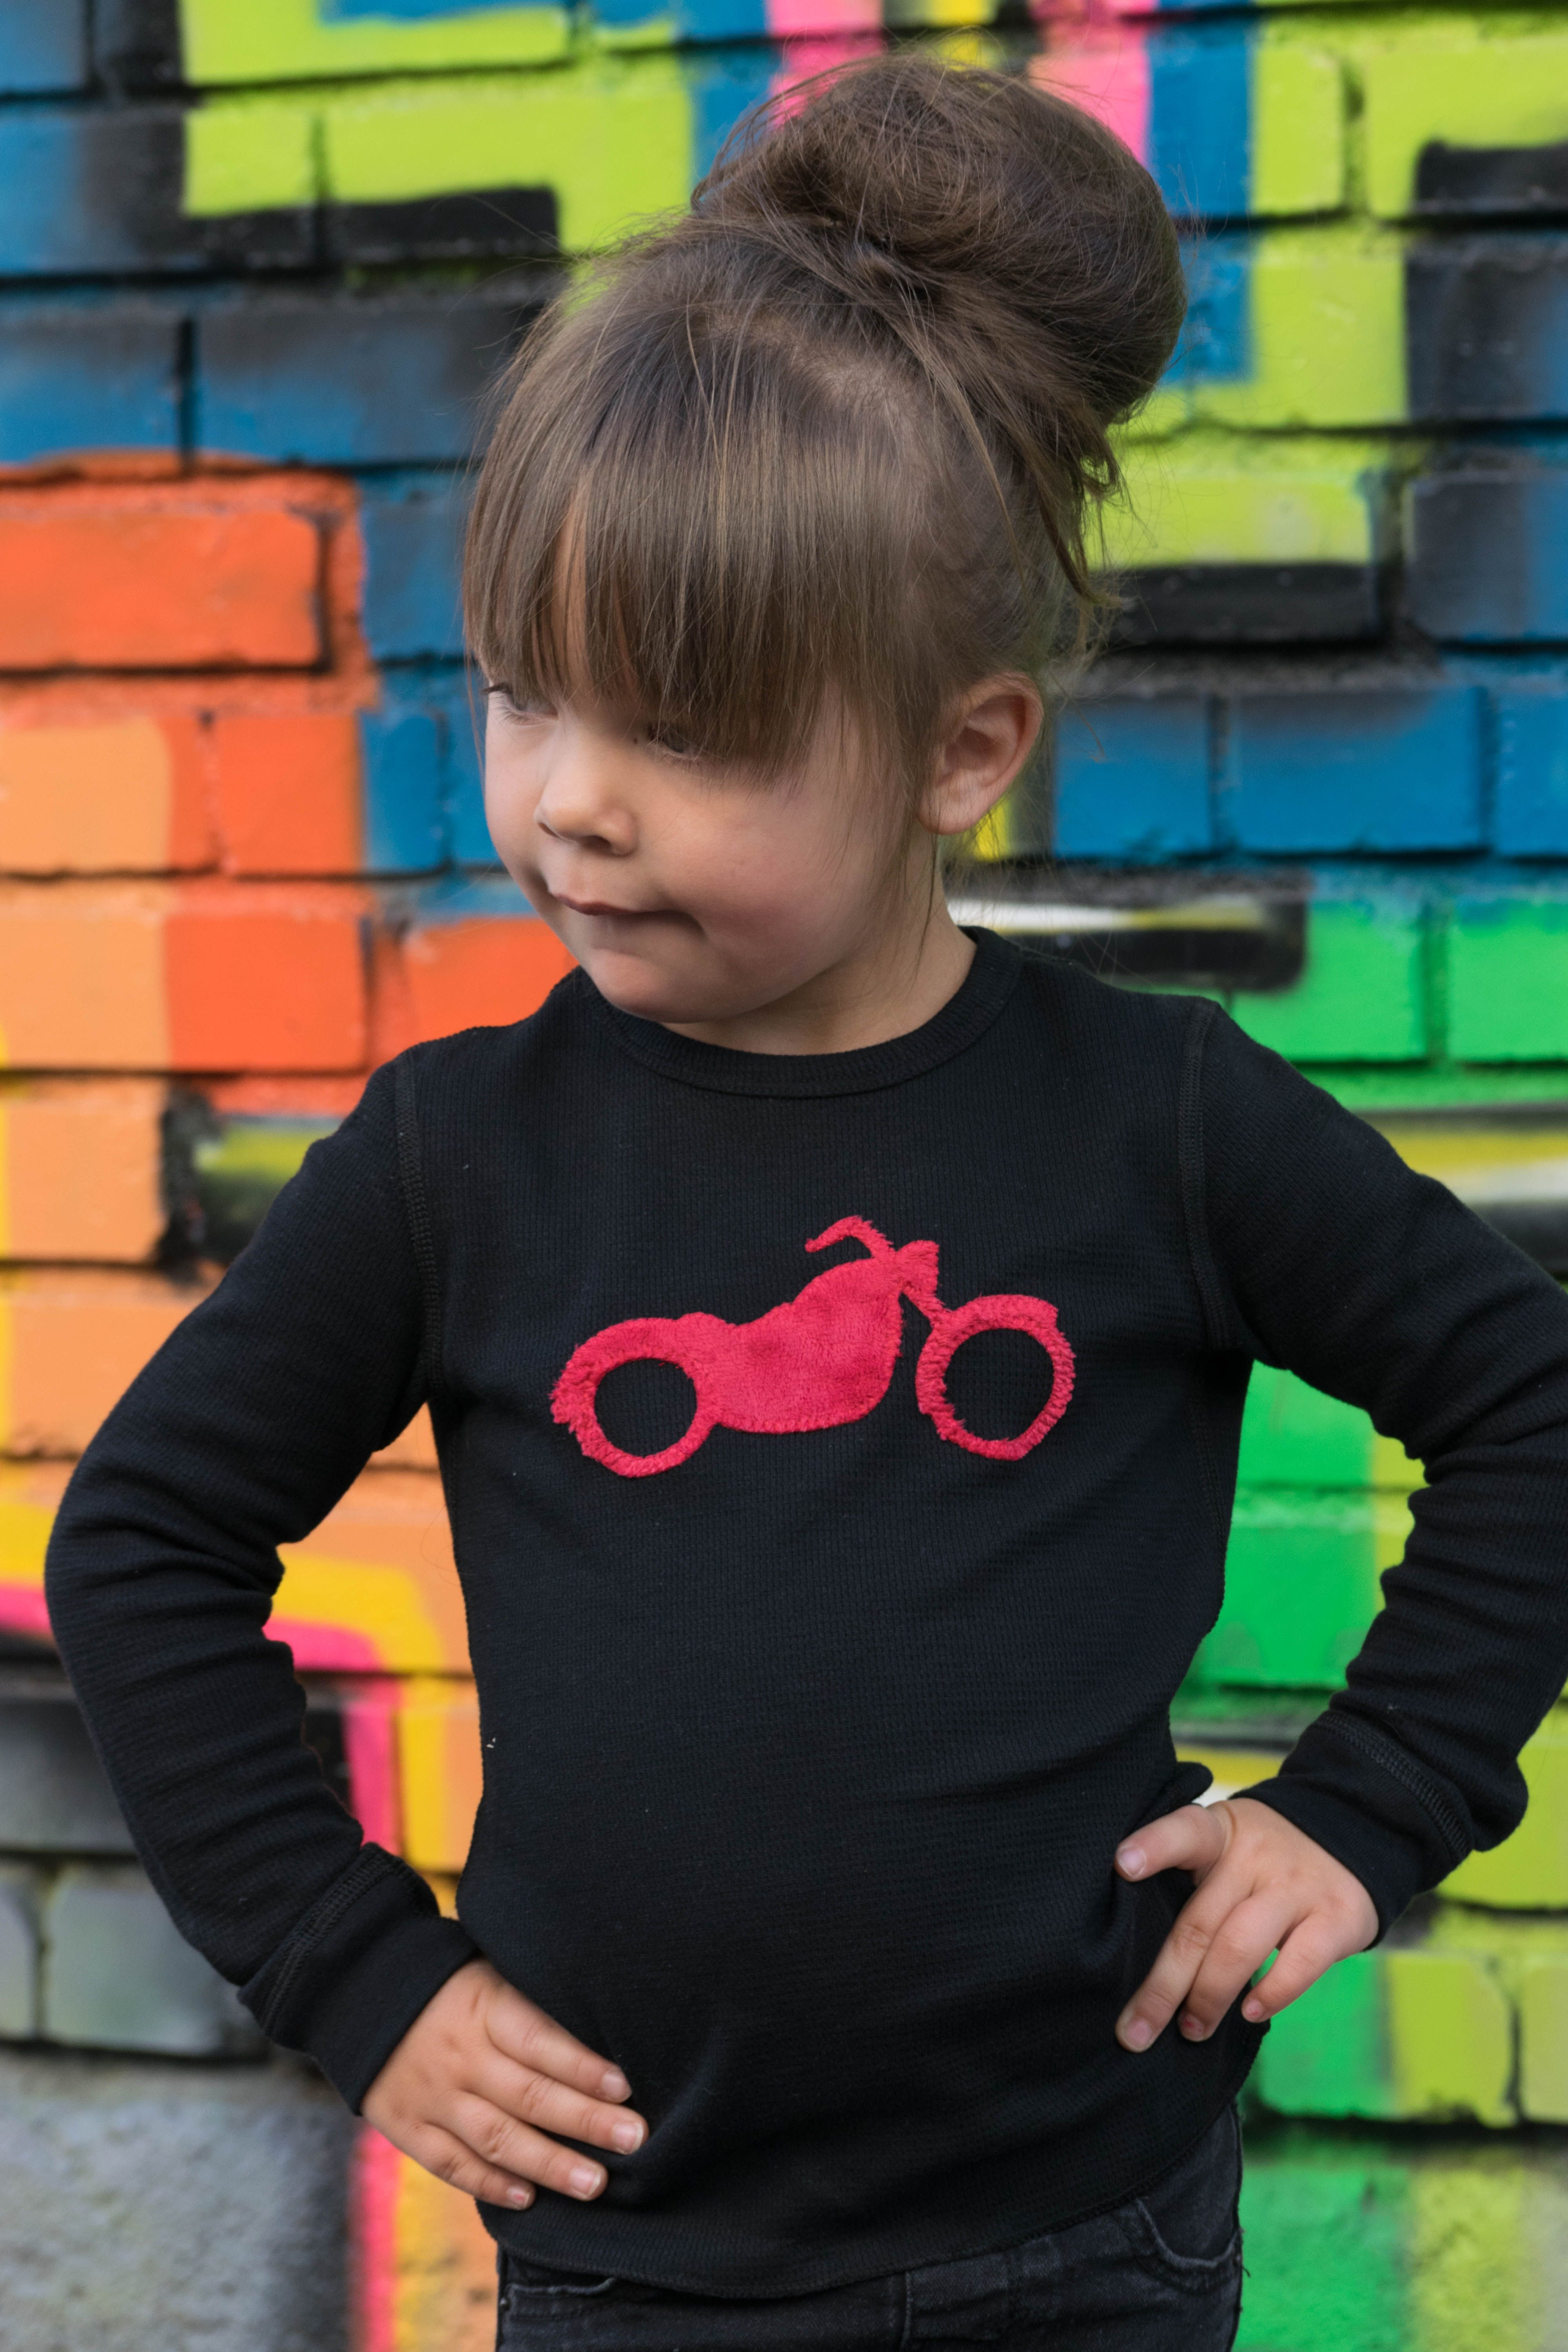 Boy hairstyle long on top top knot  moto thermal ud very cool kiddo ilovejackandnicole